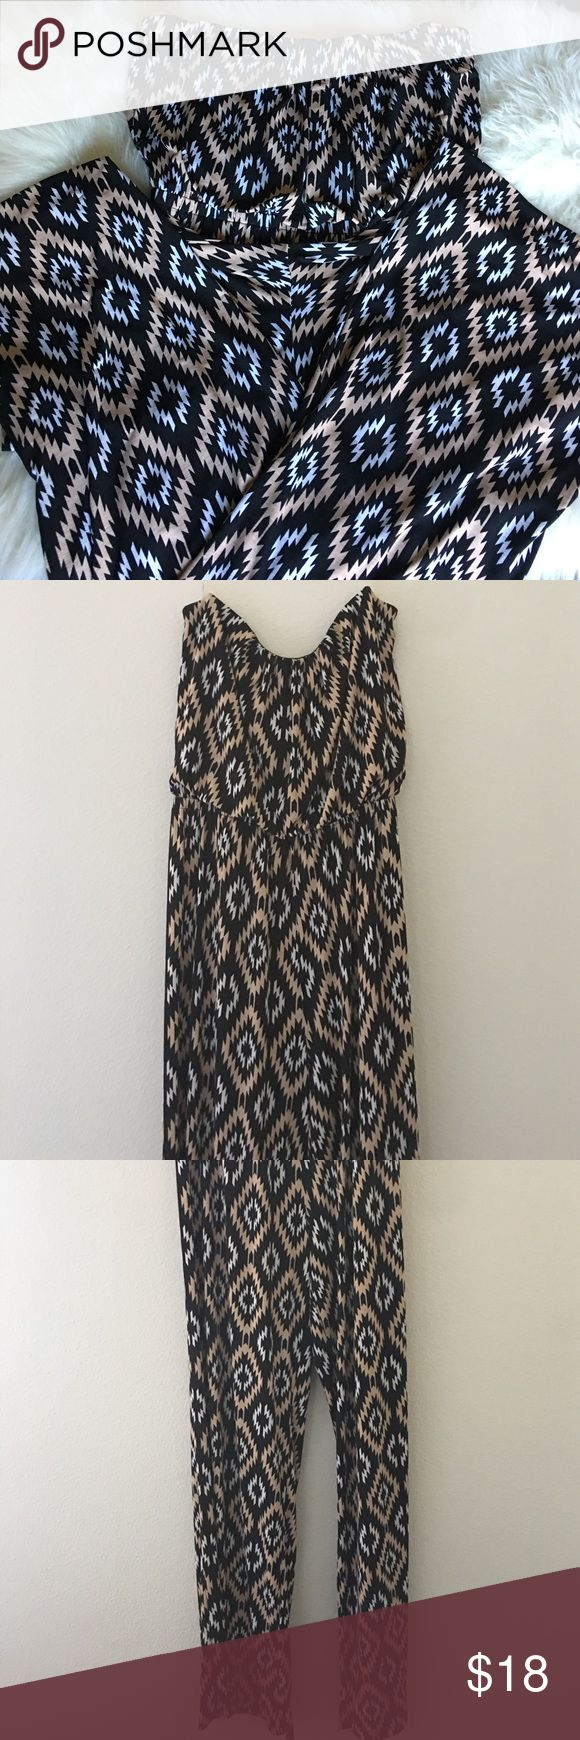 Aztec Jumpsuit Aztec pattern jump suit. Never worn. But when I washed it the first time the letters on the tag came off. It is strapless but stays up very well. This jumpsuit is so adorable but I never find myself having the right occasion to wear it. 😓 Dresses